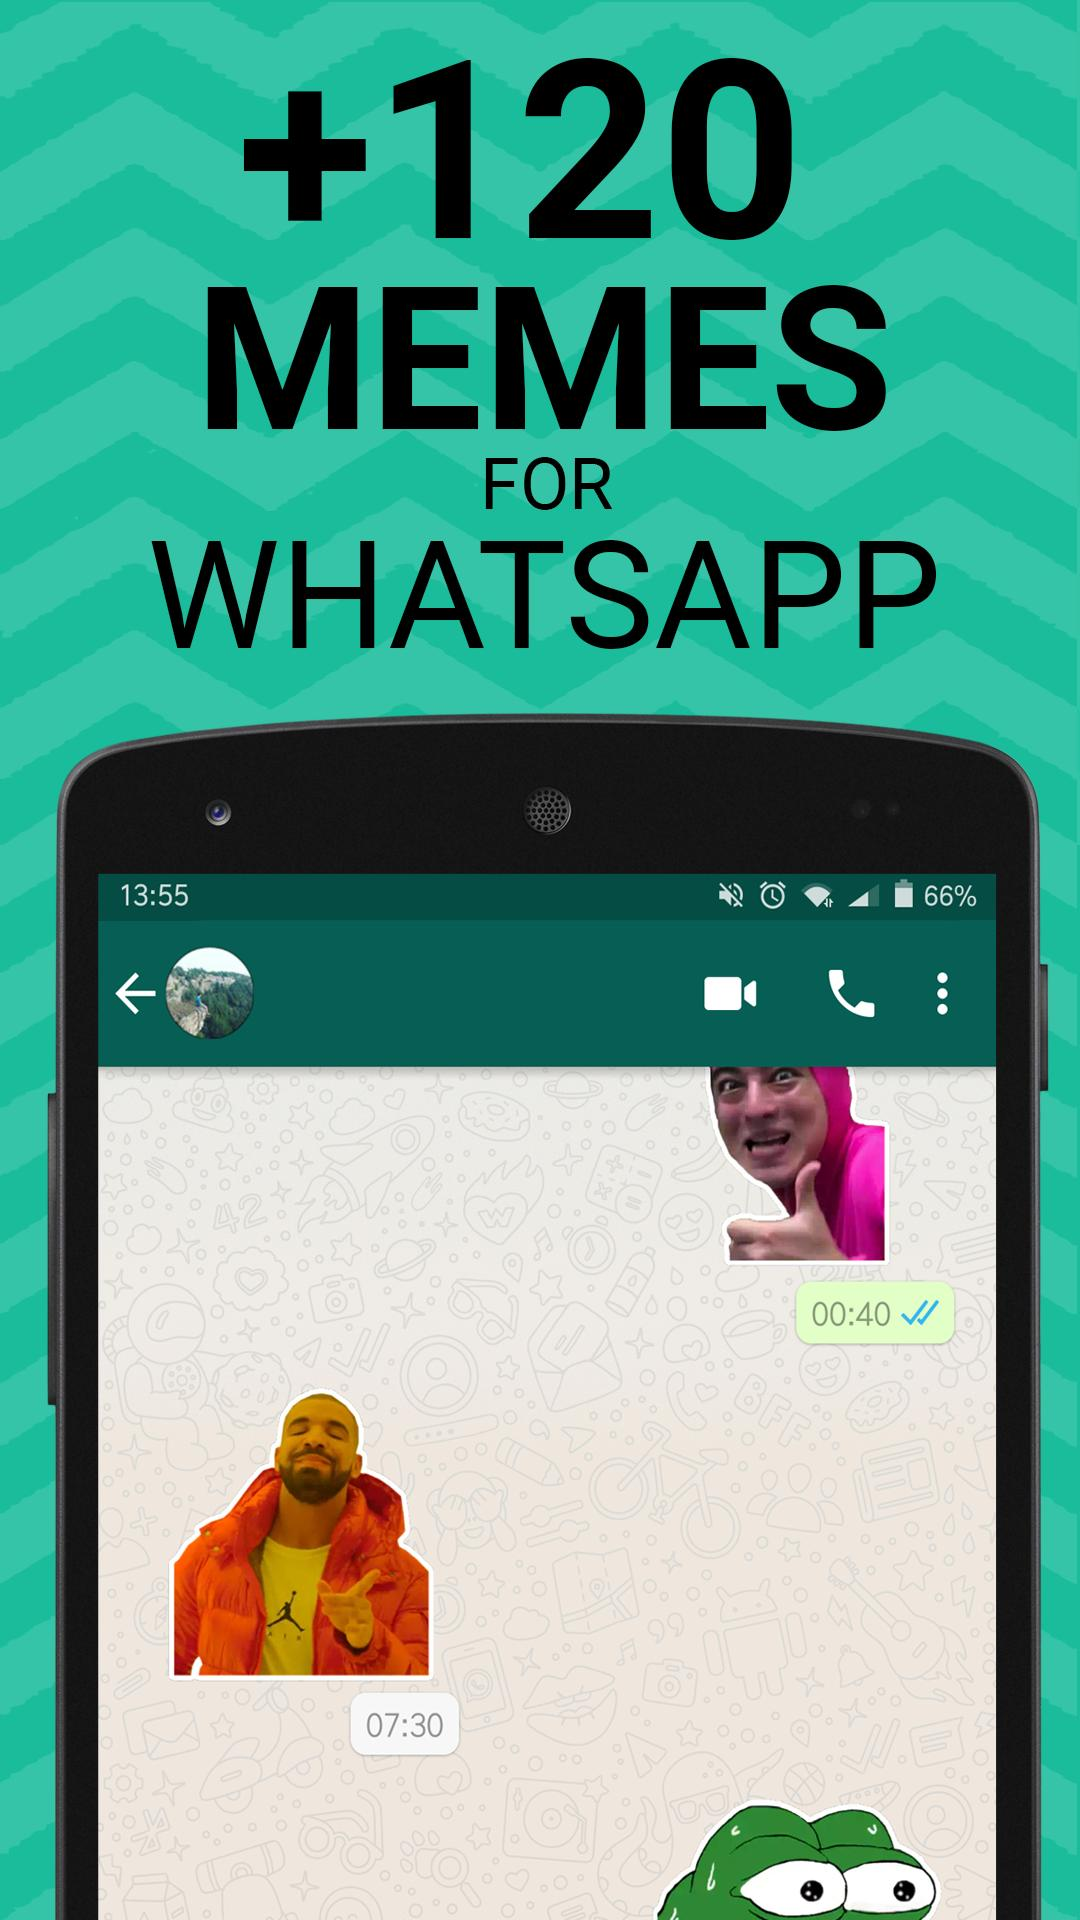 Meme Stickers For Whatsapp For Android Apk Download